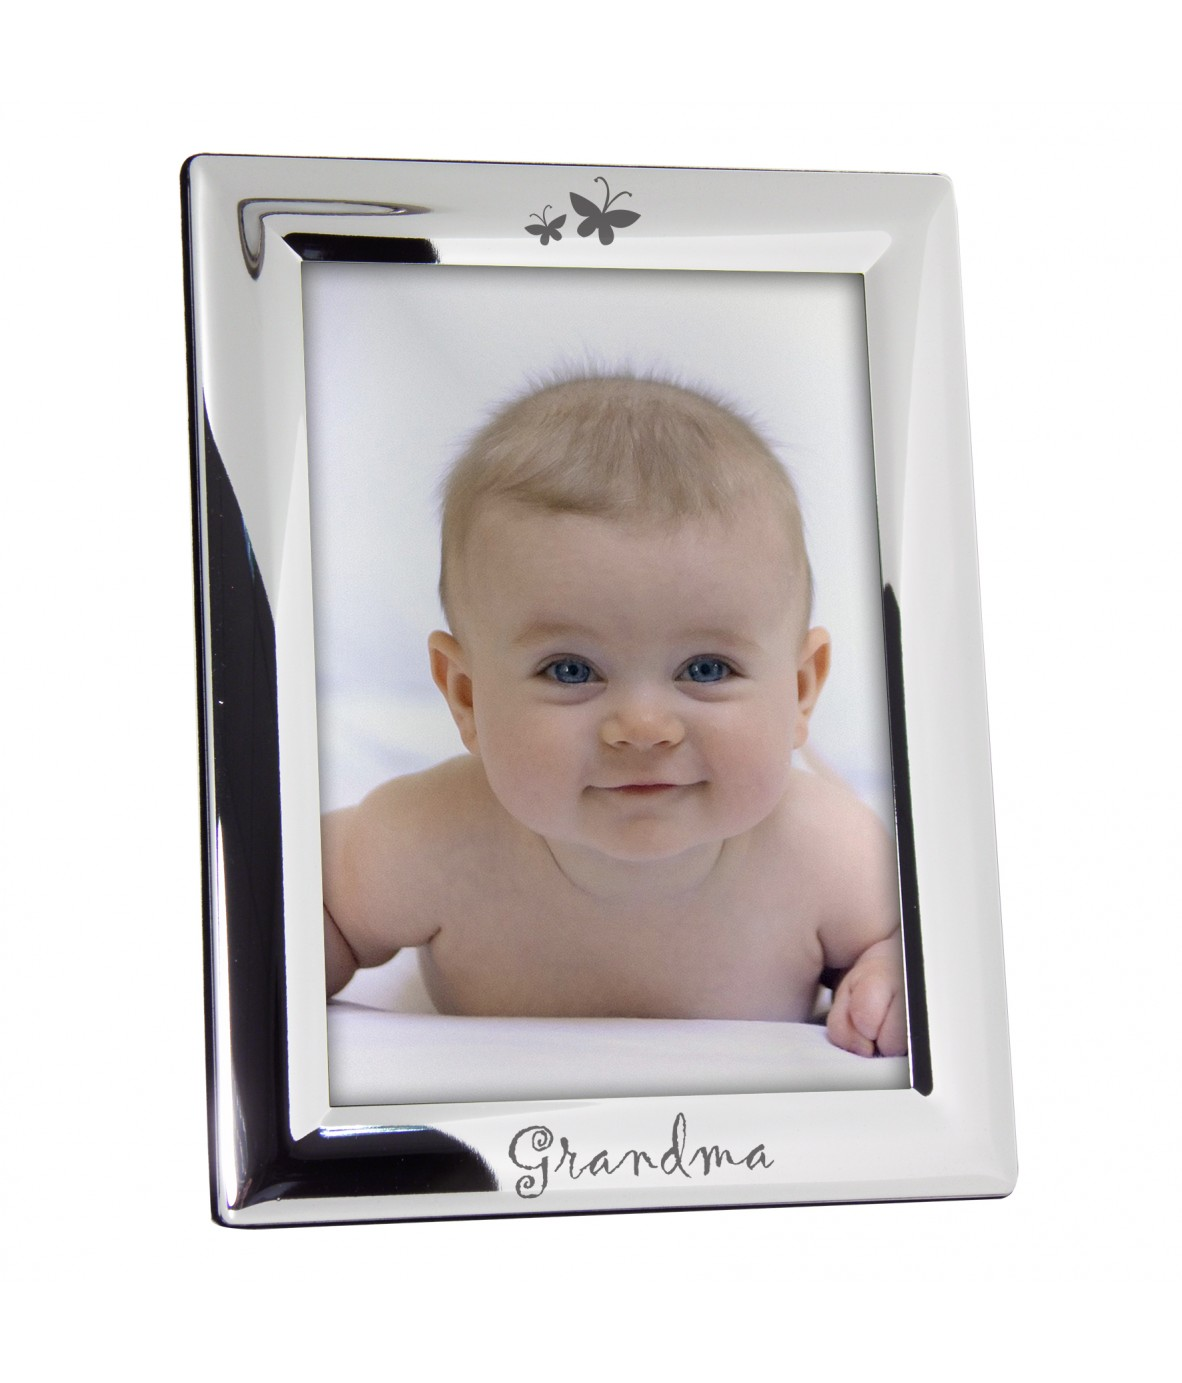 Awesome Picture Frames For Grandmas Image - Picture Frame Design ...